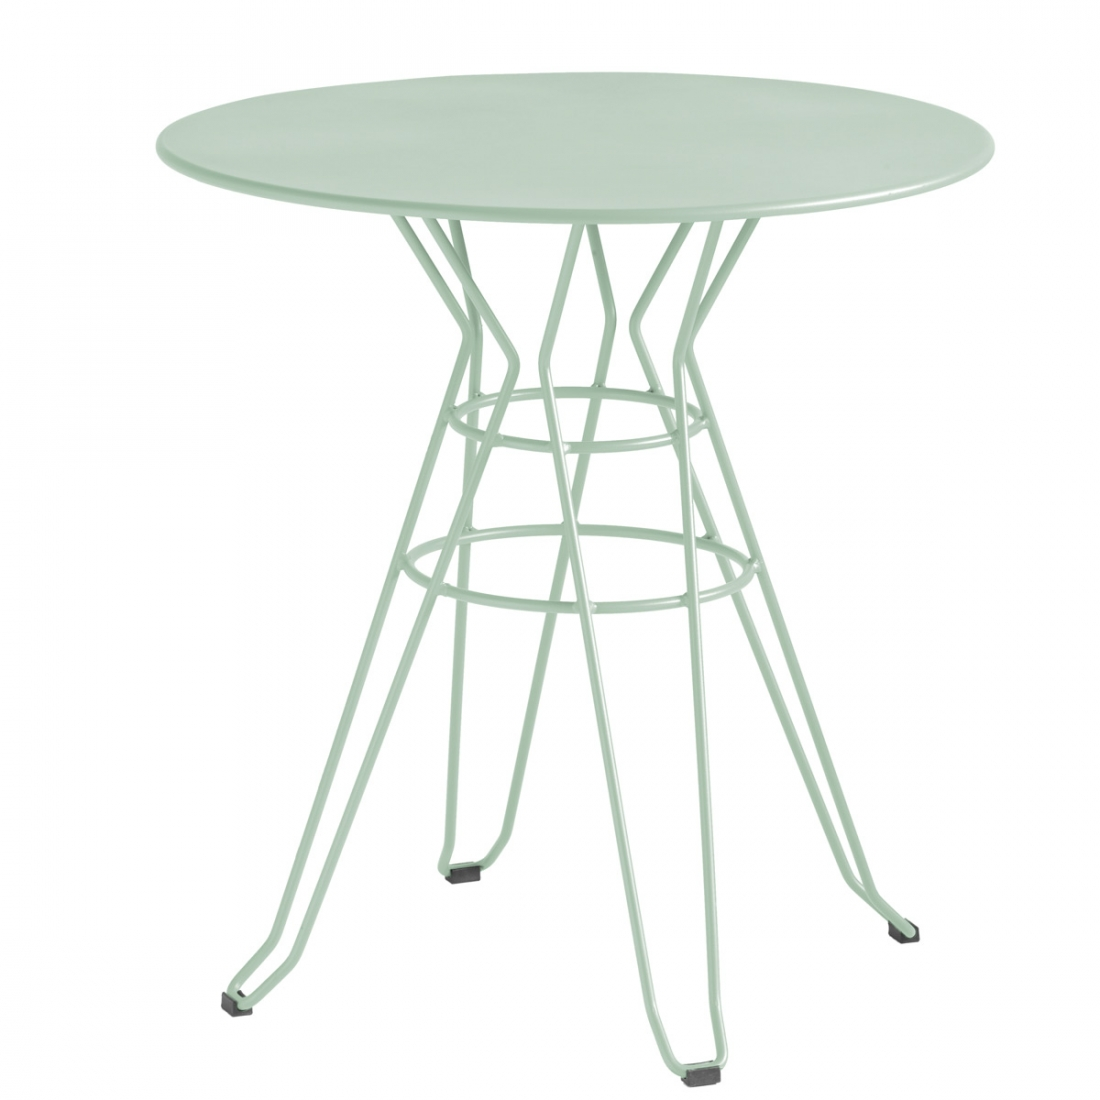 Table basse de jardin ronde capri isimar for Petite table ronde de jardin